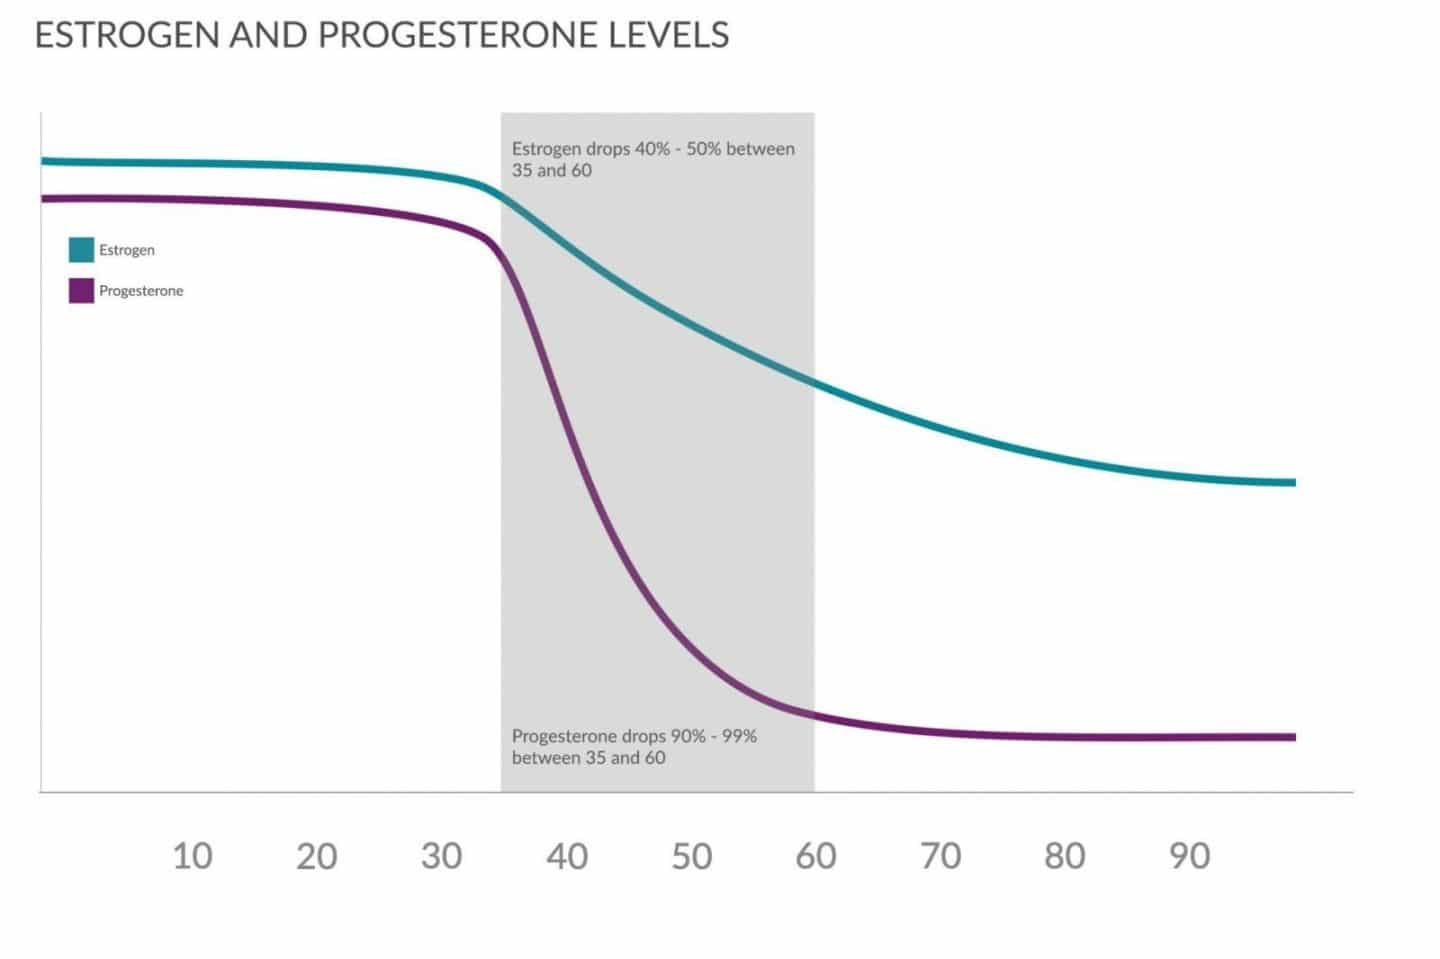 What Happens During Menopause and Perimenopause with Your Estrogen and Progesterone Levels